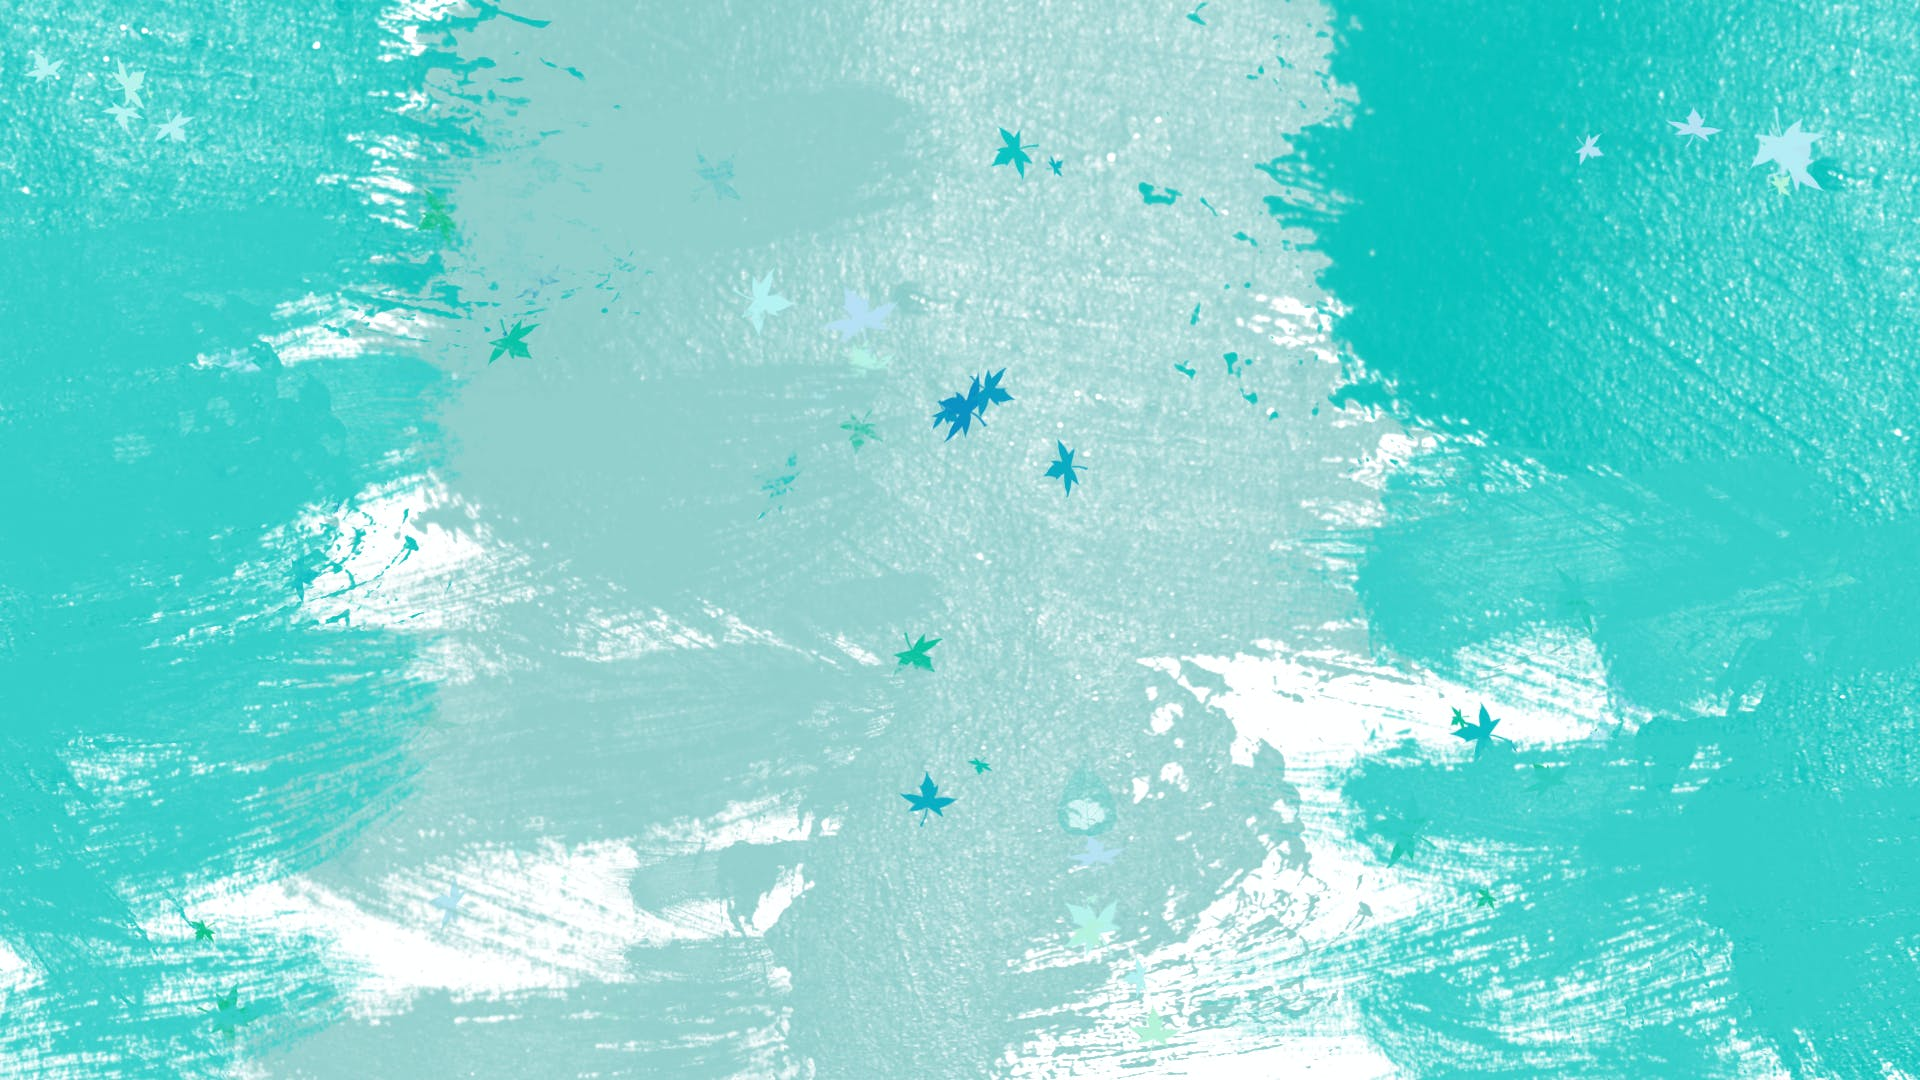 Free stock photo of abstract painting, Adobe Photoshop, blue, creative